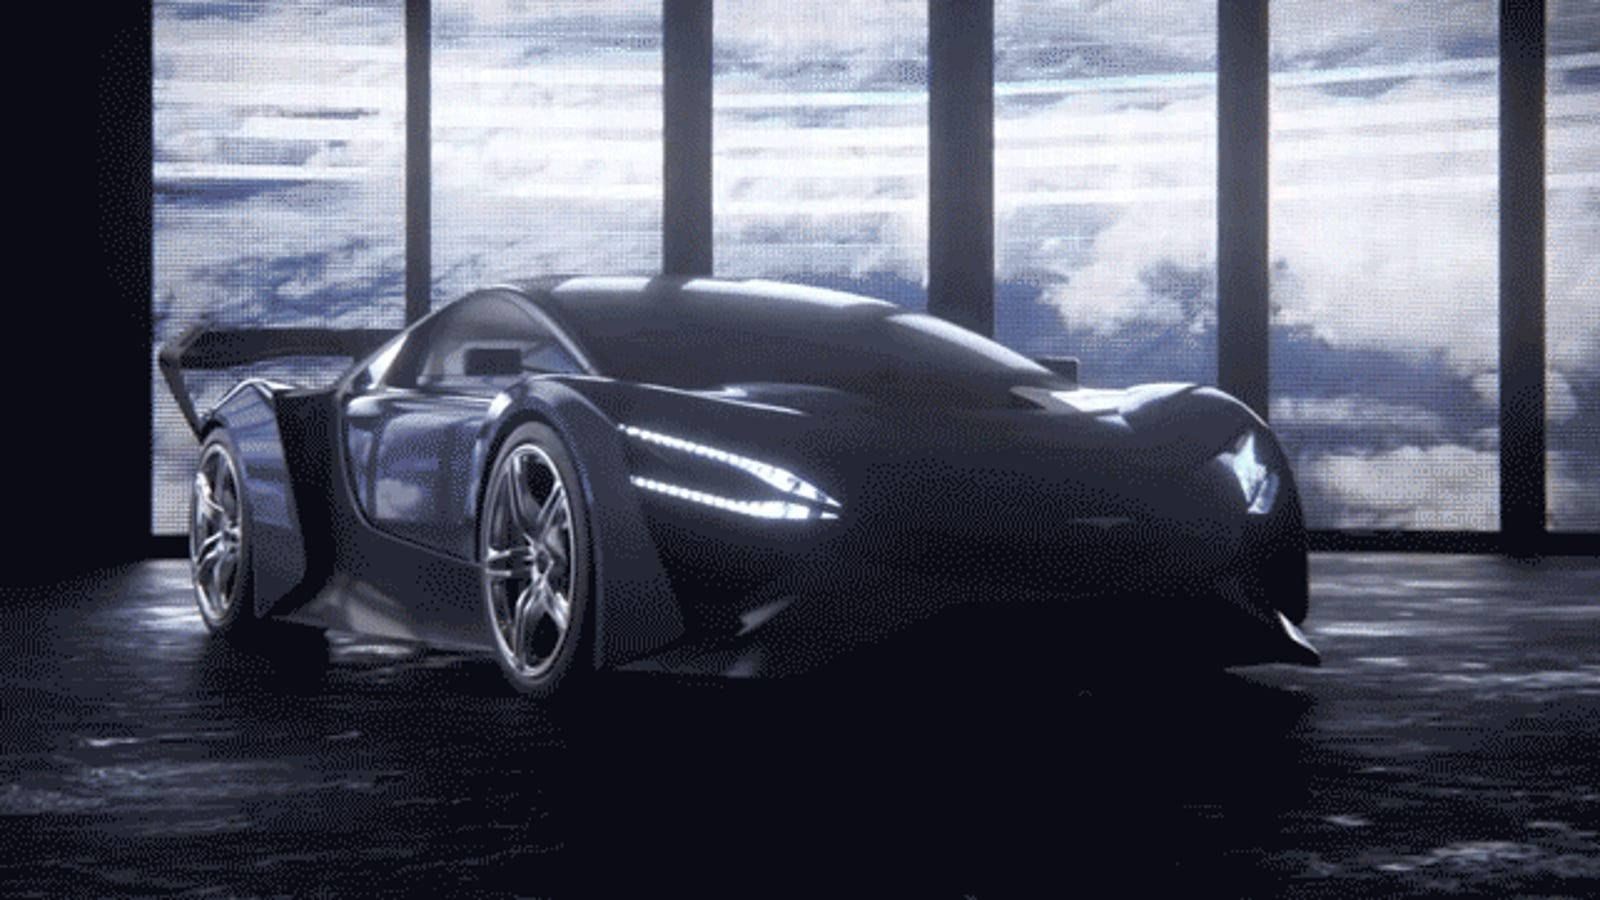 What's The Deal With The Turbine-Powered Chinese Supercar